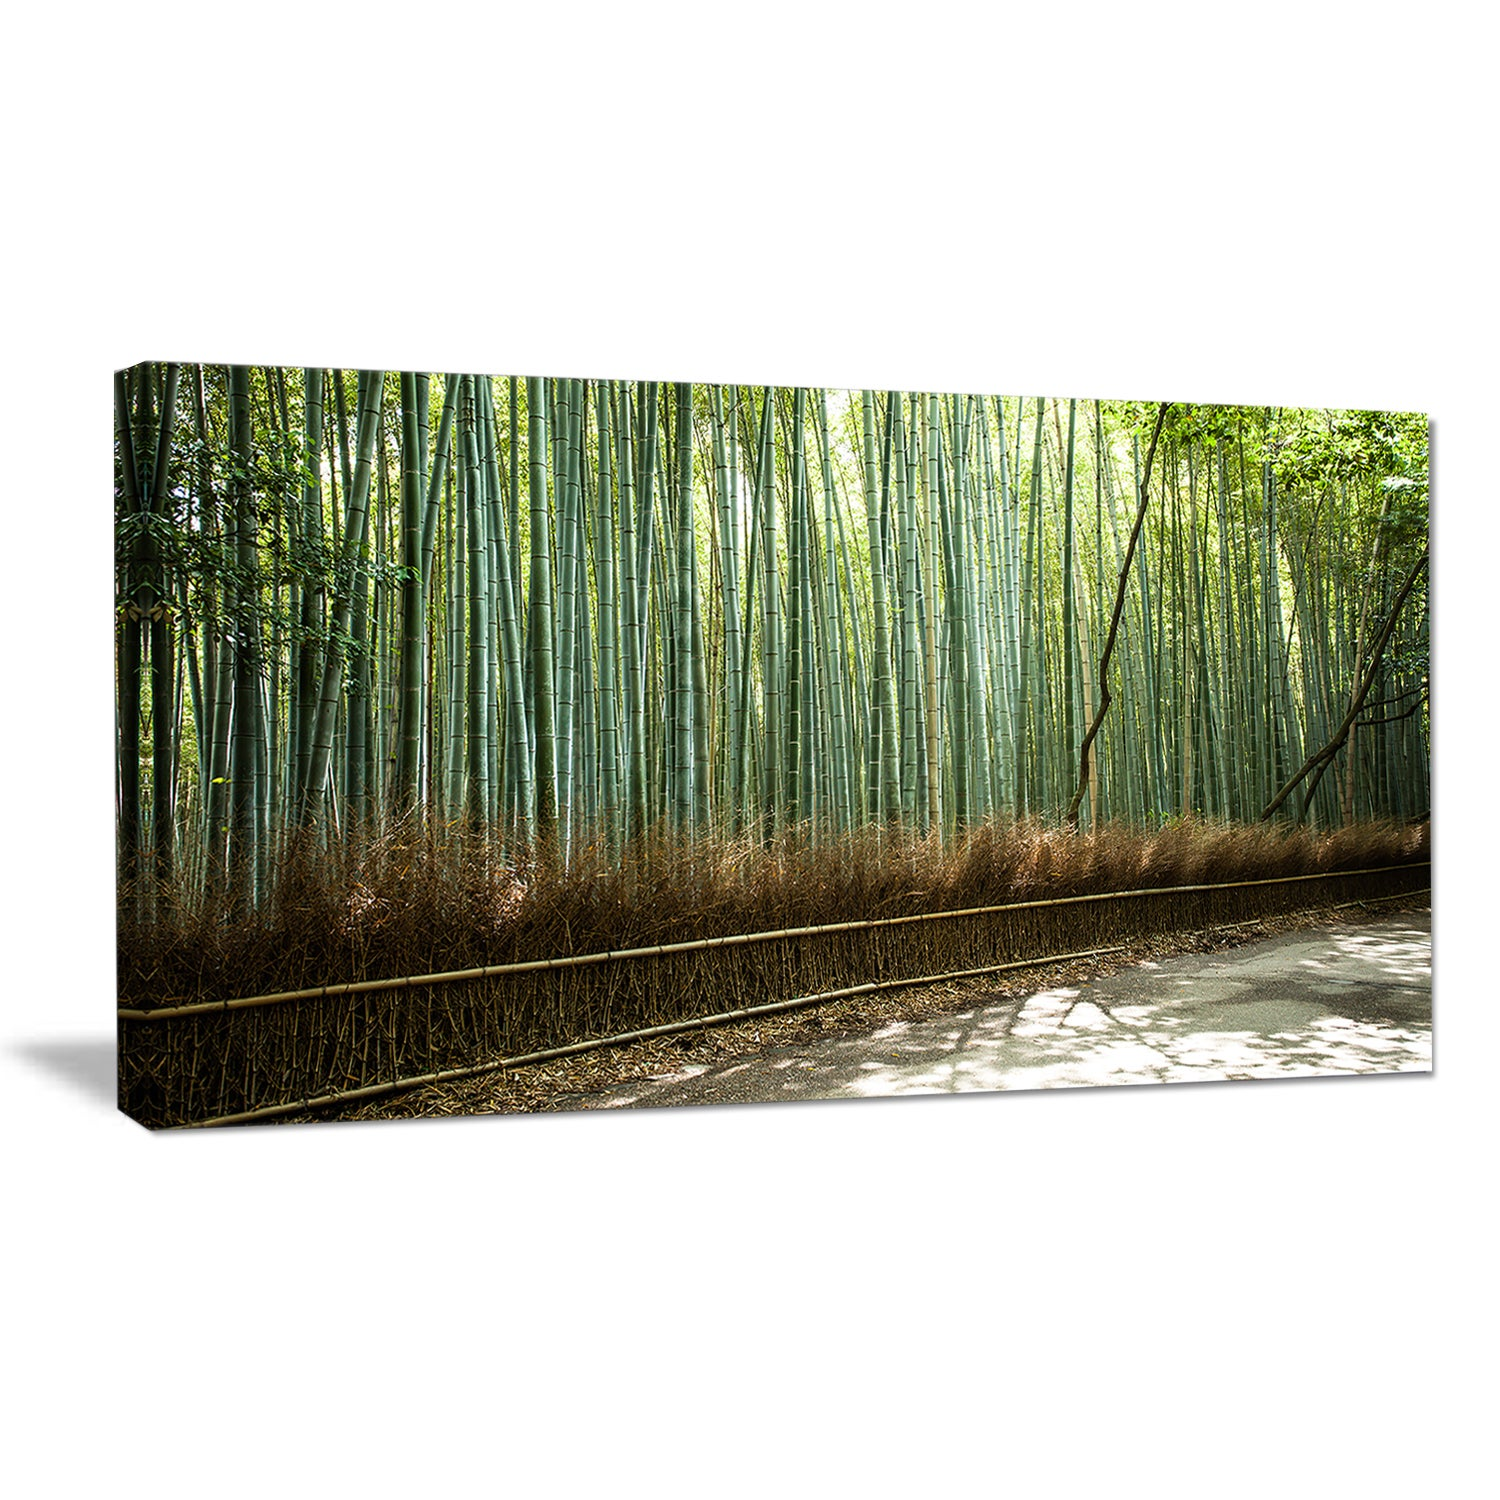 Beautiful-View-of-Bamboo-Forest-Forest-Canvas-Wall-Art-Mini thumbnail 7